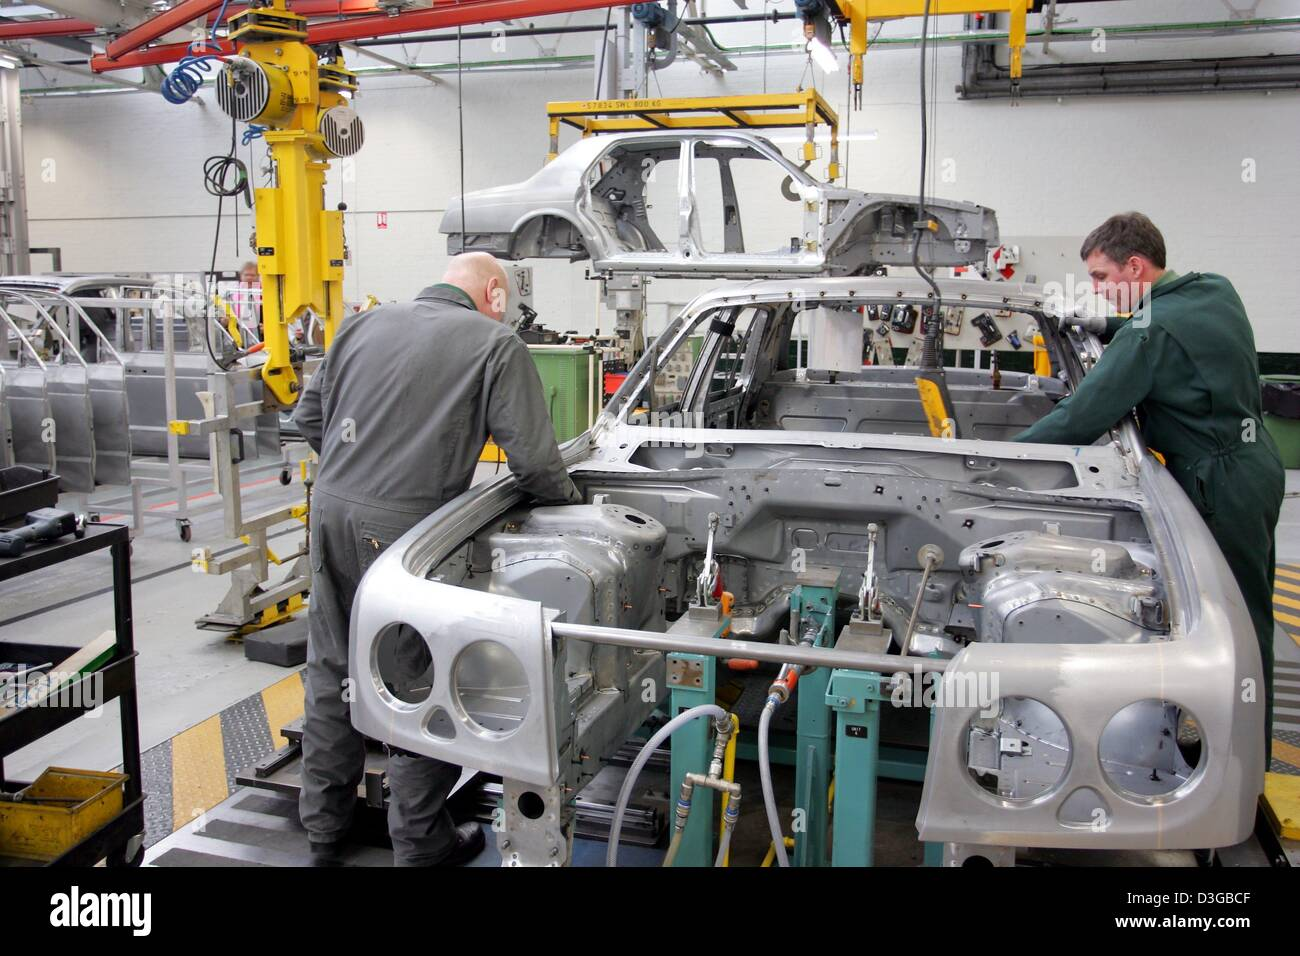 (dpa) - Two workers in the production line of British carmaker Bentley during the assembly of components on a body - Stock Image